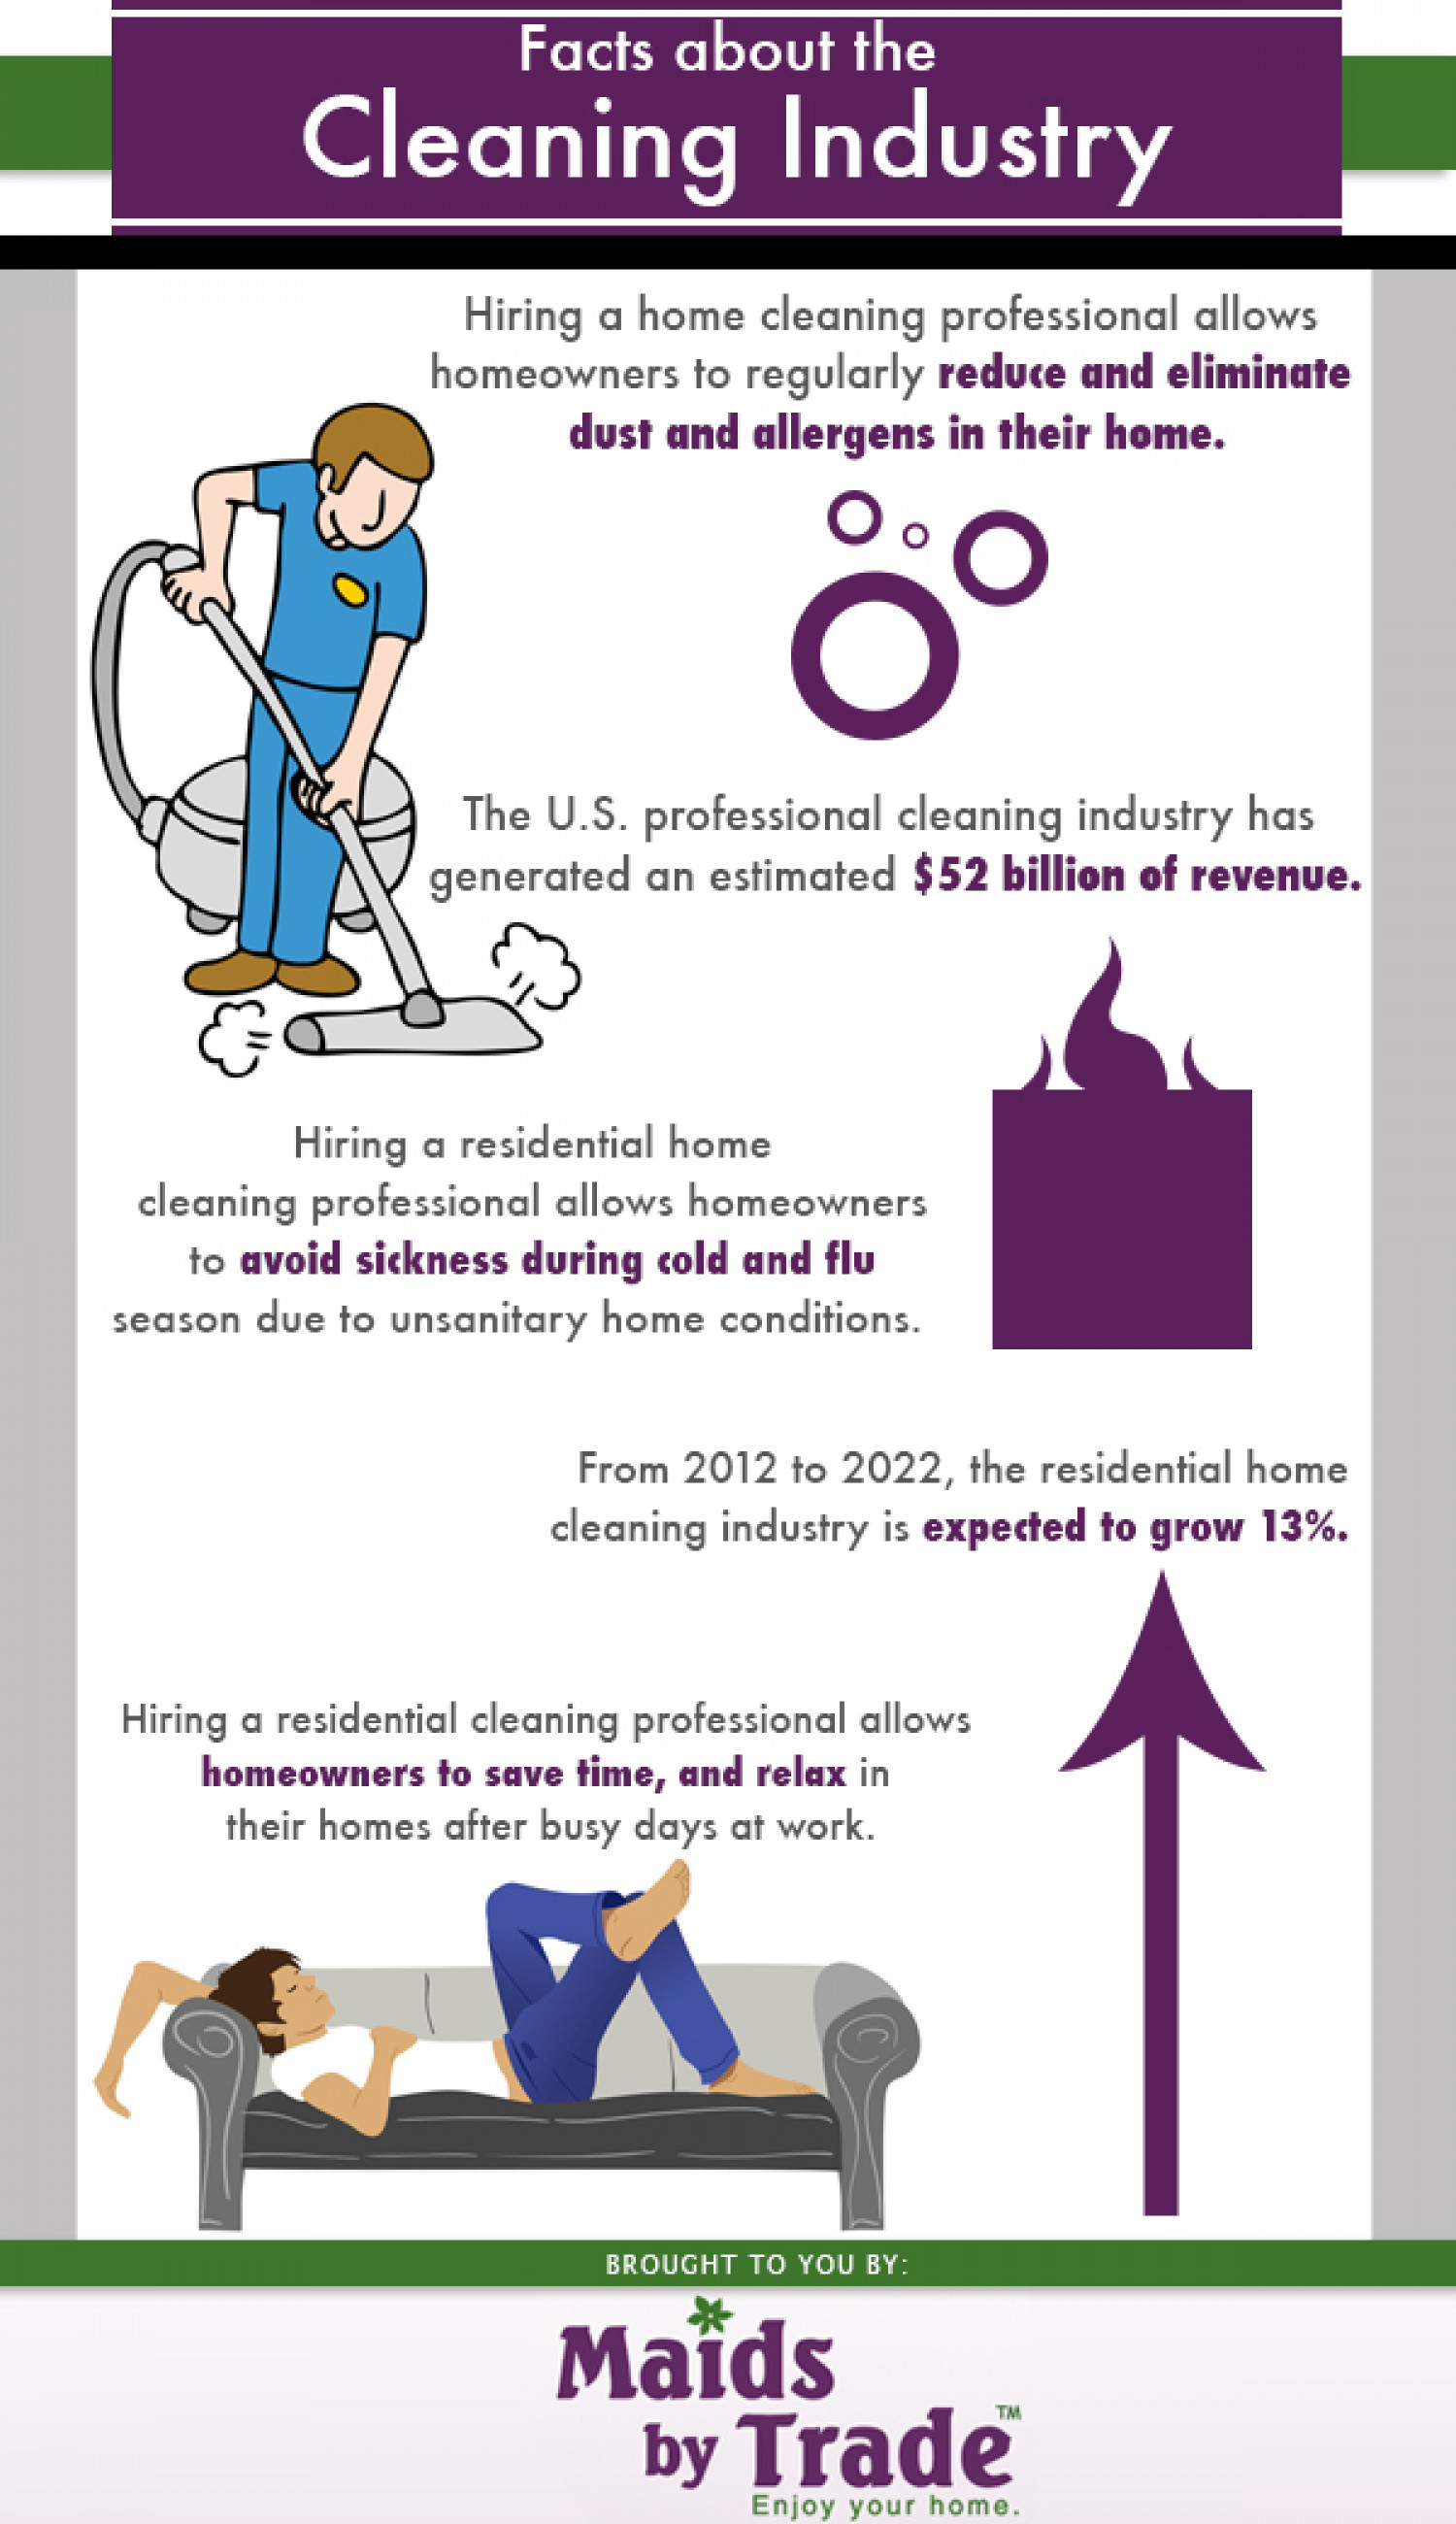 Facts About The Cleaning Industry Infographic